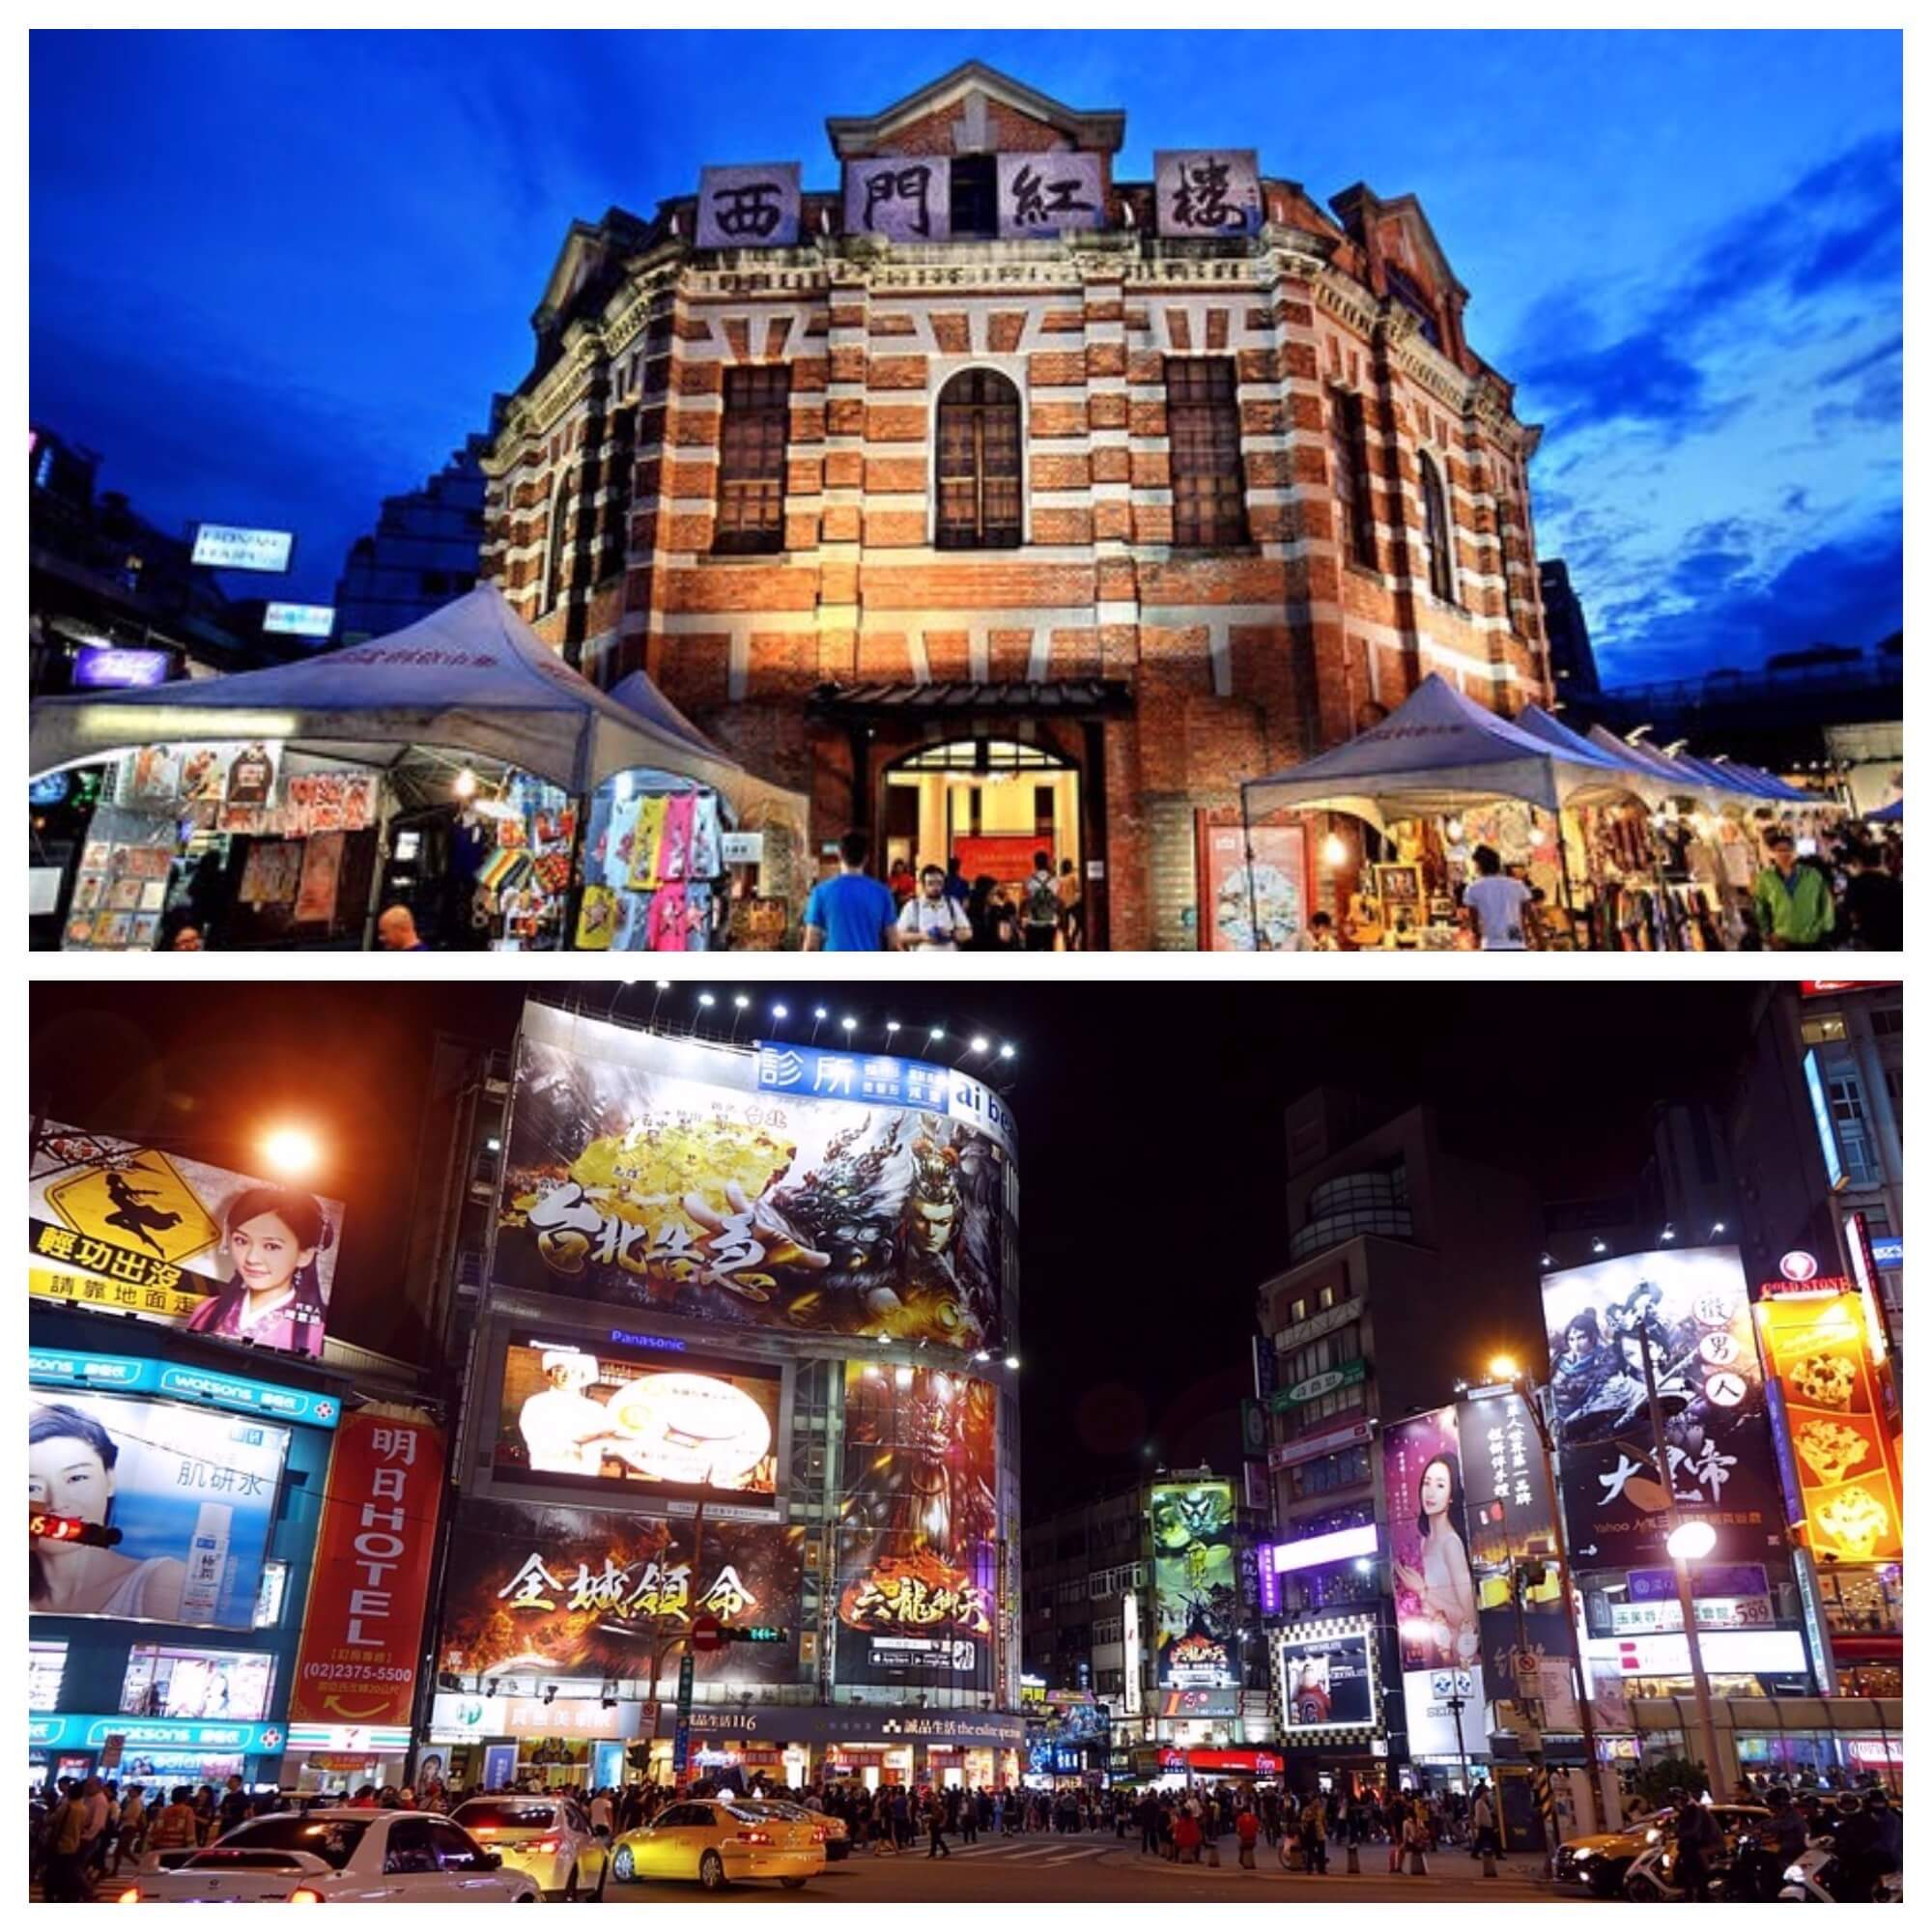 Taipei Travel Guide for First Timers- Ximending Shopping